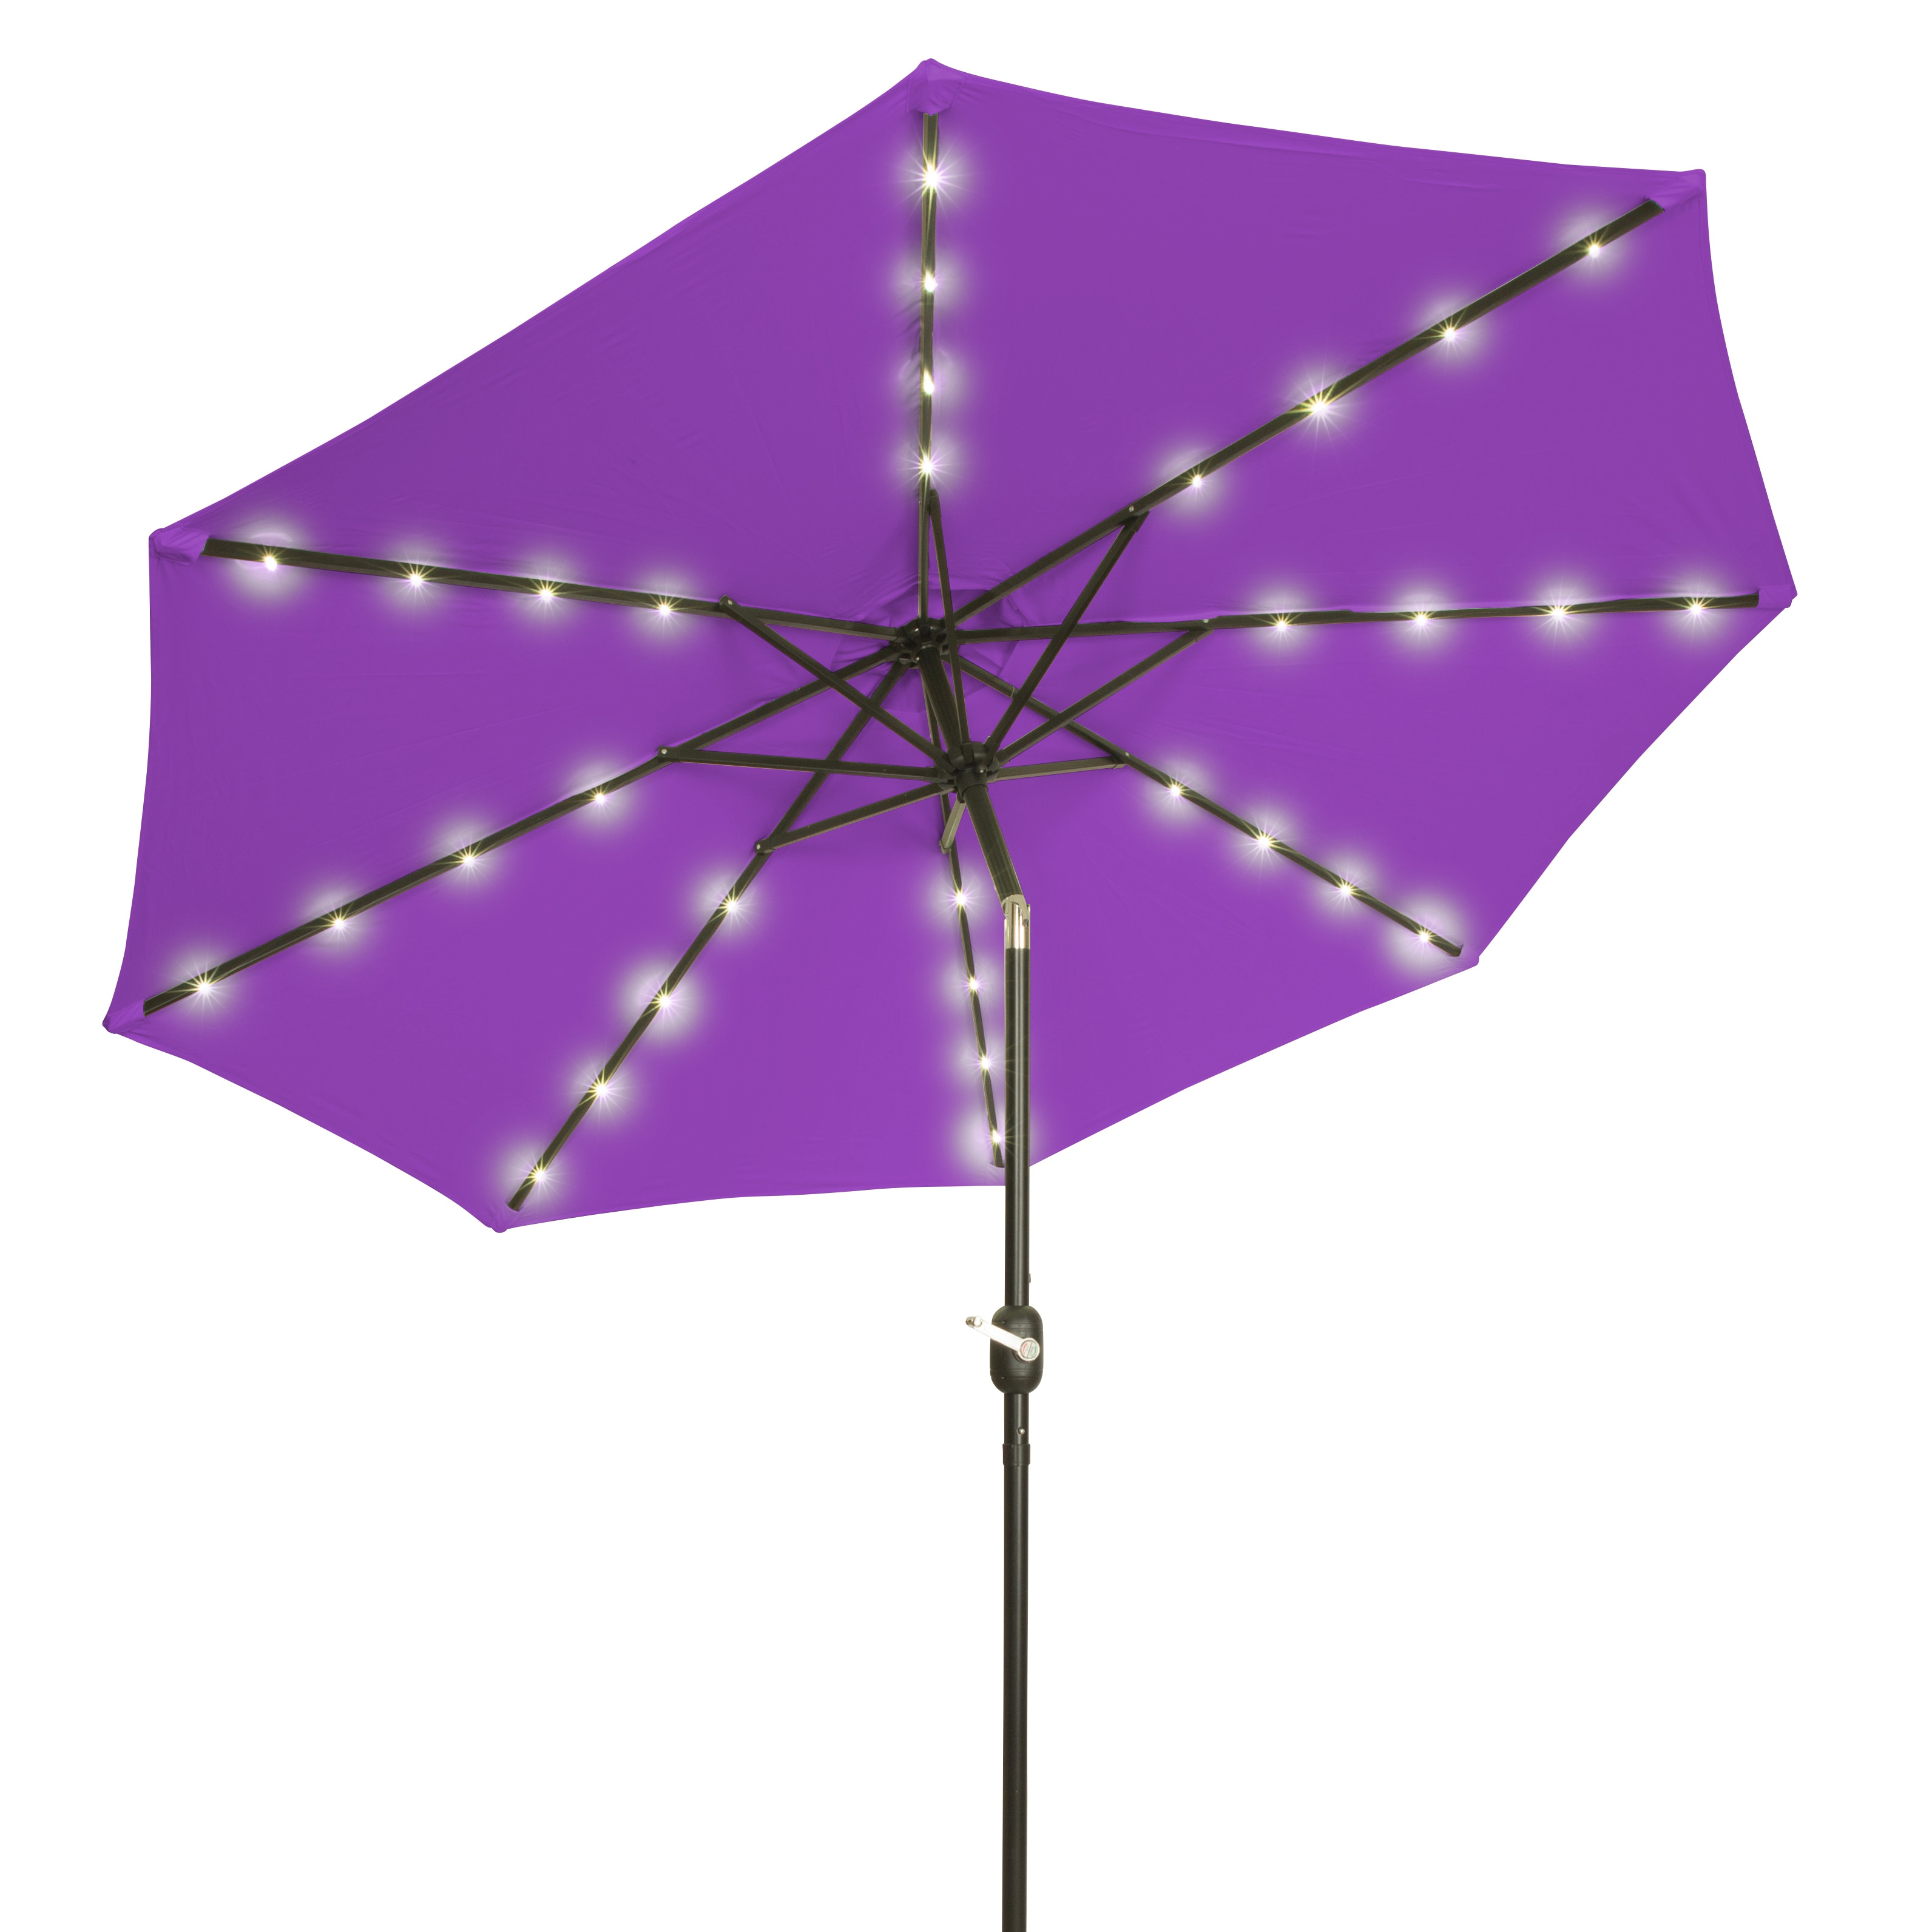 Trademark Innovations Purple Polyester And Steel 9 Foot Deluxe  Solar Powered LED LLighted Patio Umbrella   Free Shipping Today   Overstock    20465121